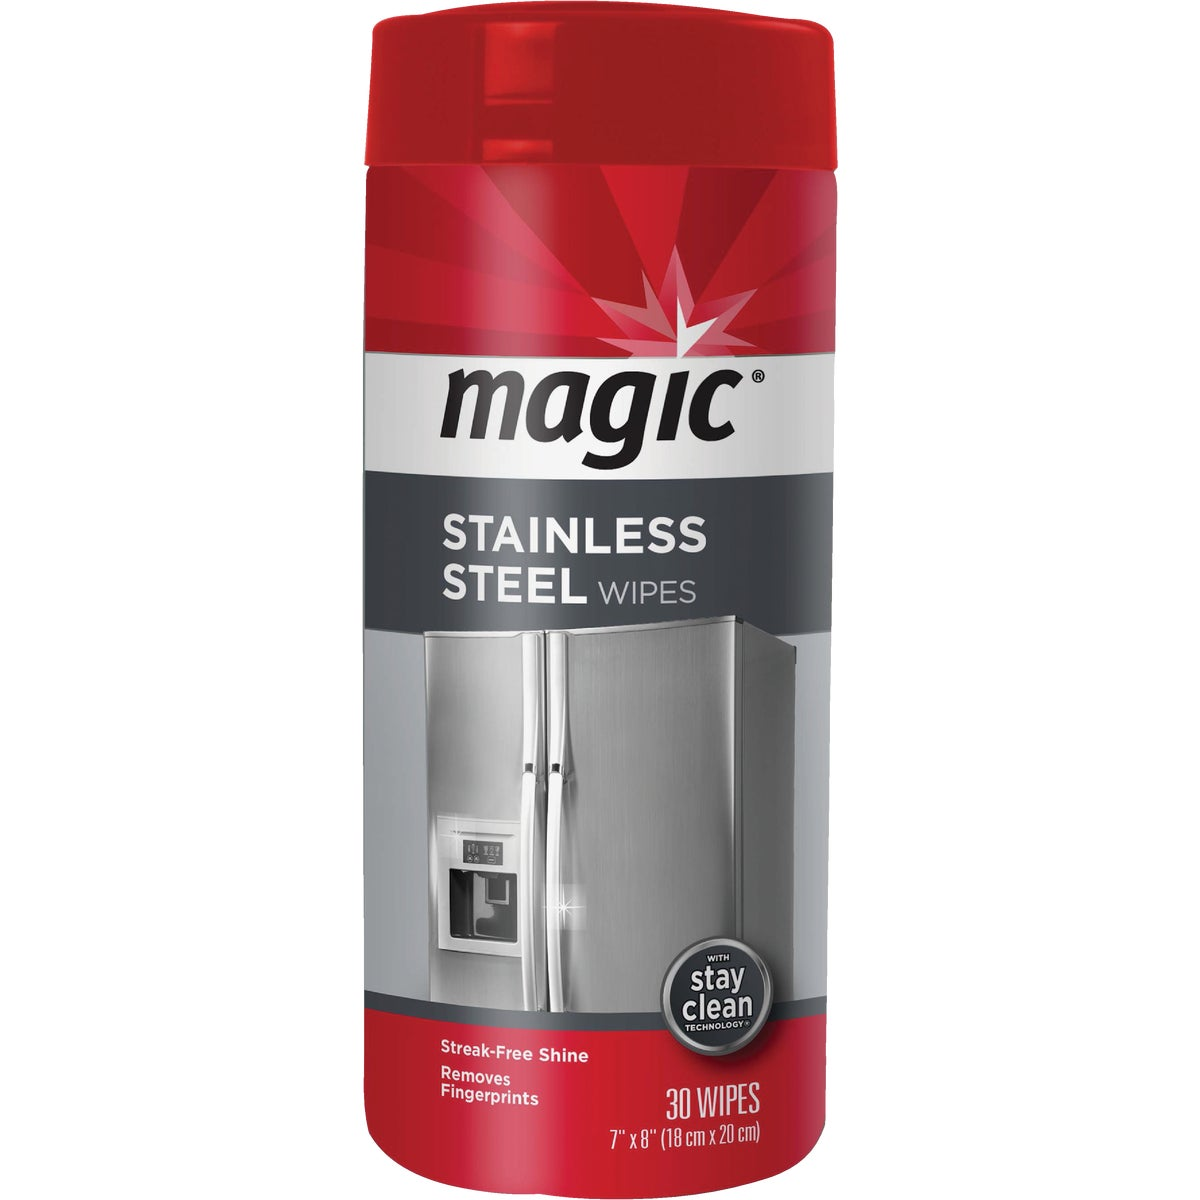 30CT STNLS STEEL WIPES - 1858 by Magic Ntrl Magic Sci